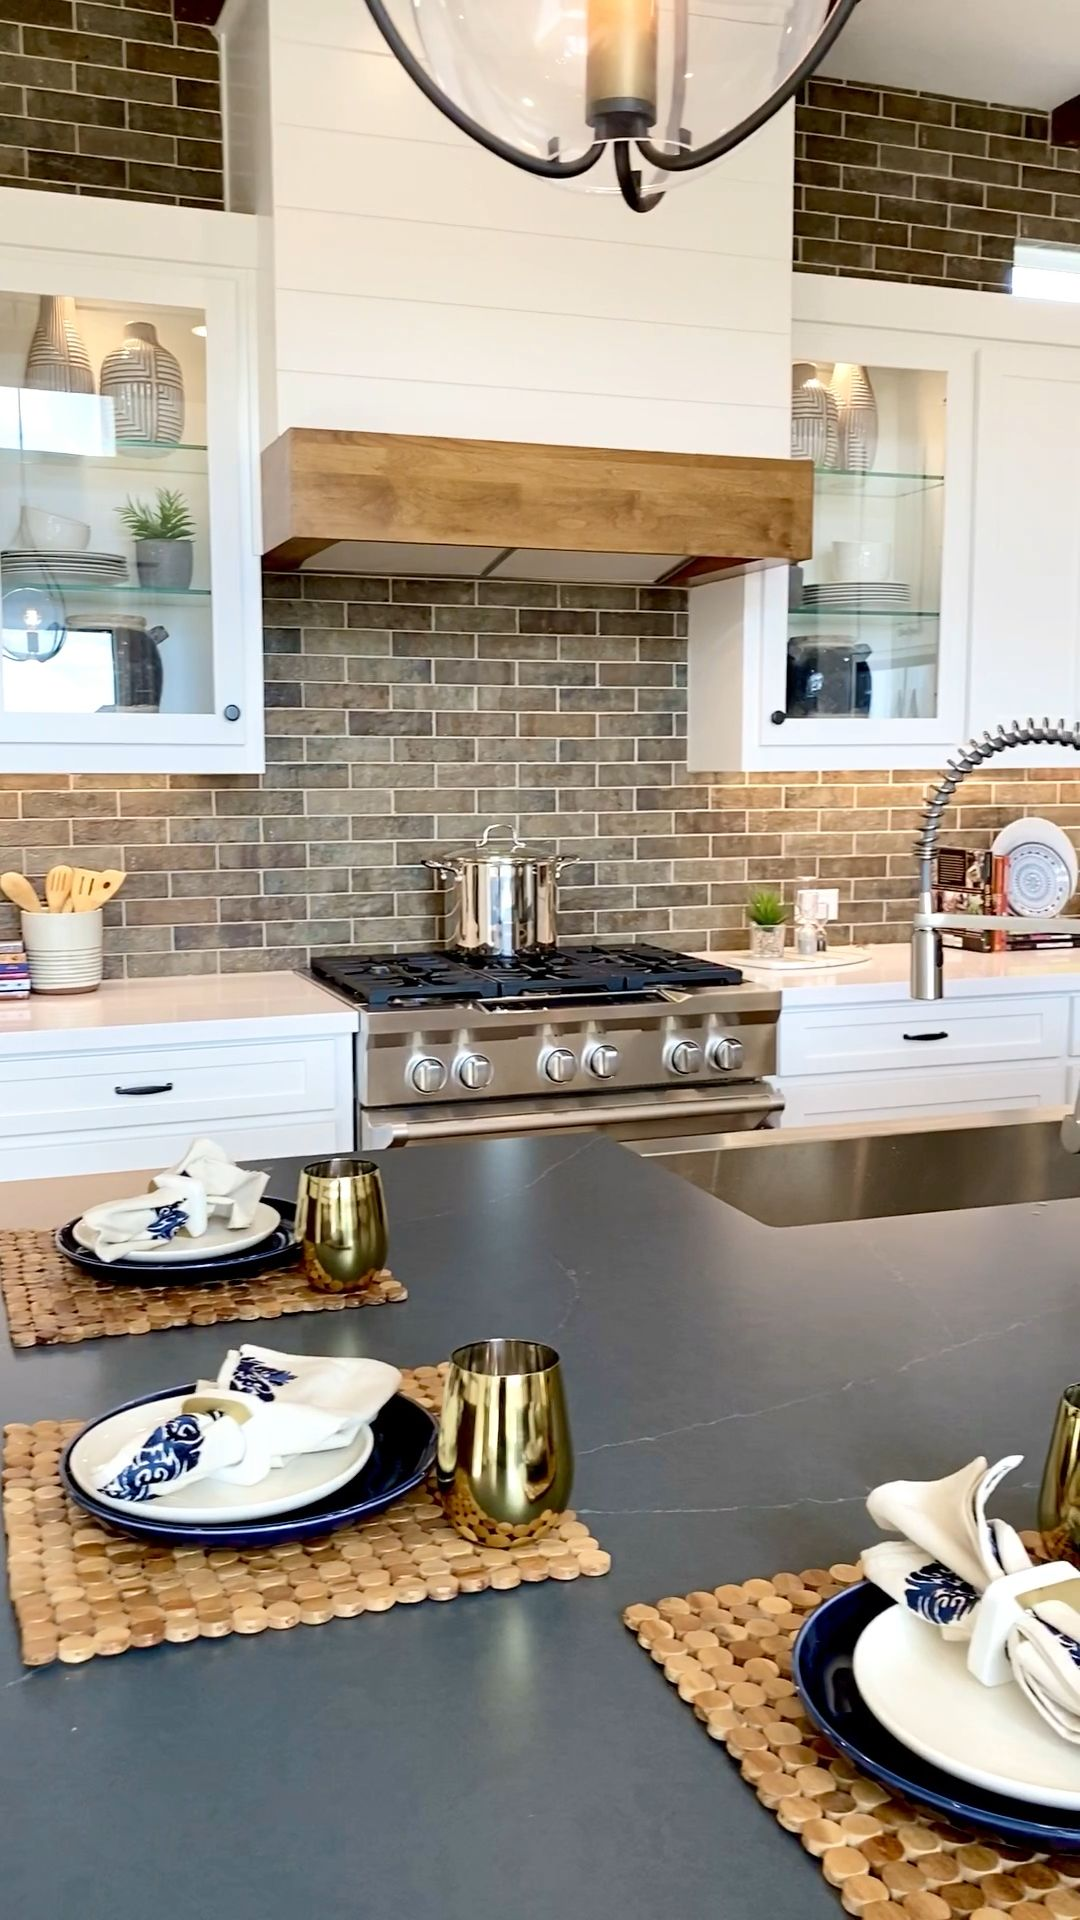 A blend of the classic white kitchen with a modern-industrial accent using a brick backsplash!  Great design for many styles - Click to see more model home photo inspiration images.... THE DECORATING COACH  #decoratingideas #kitchenideas #brickwall